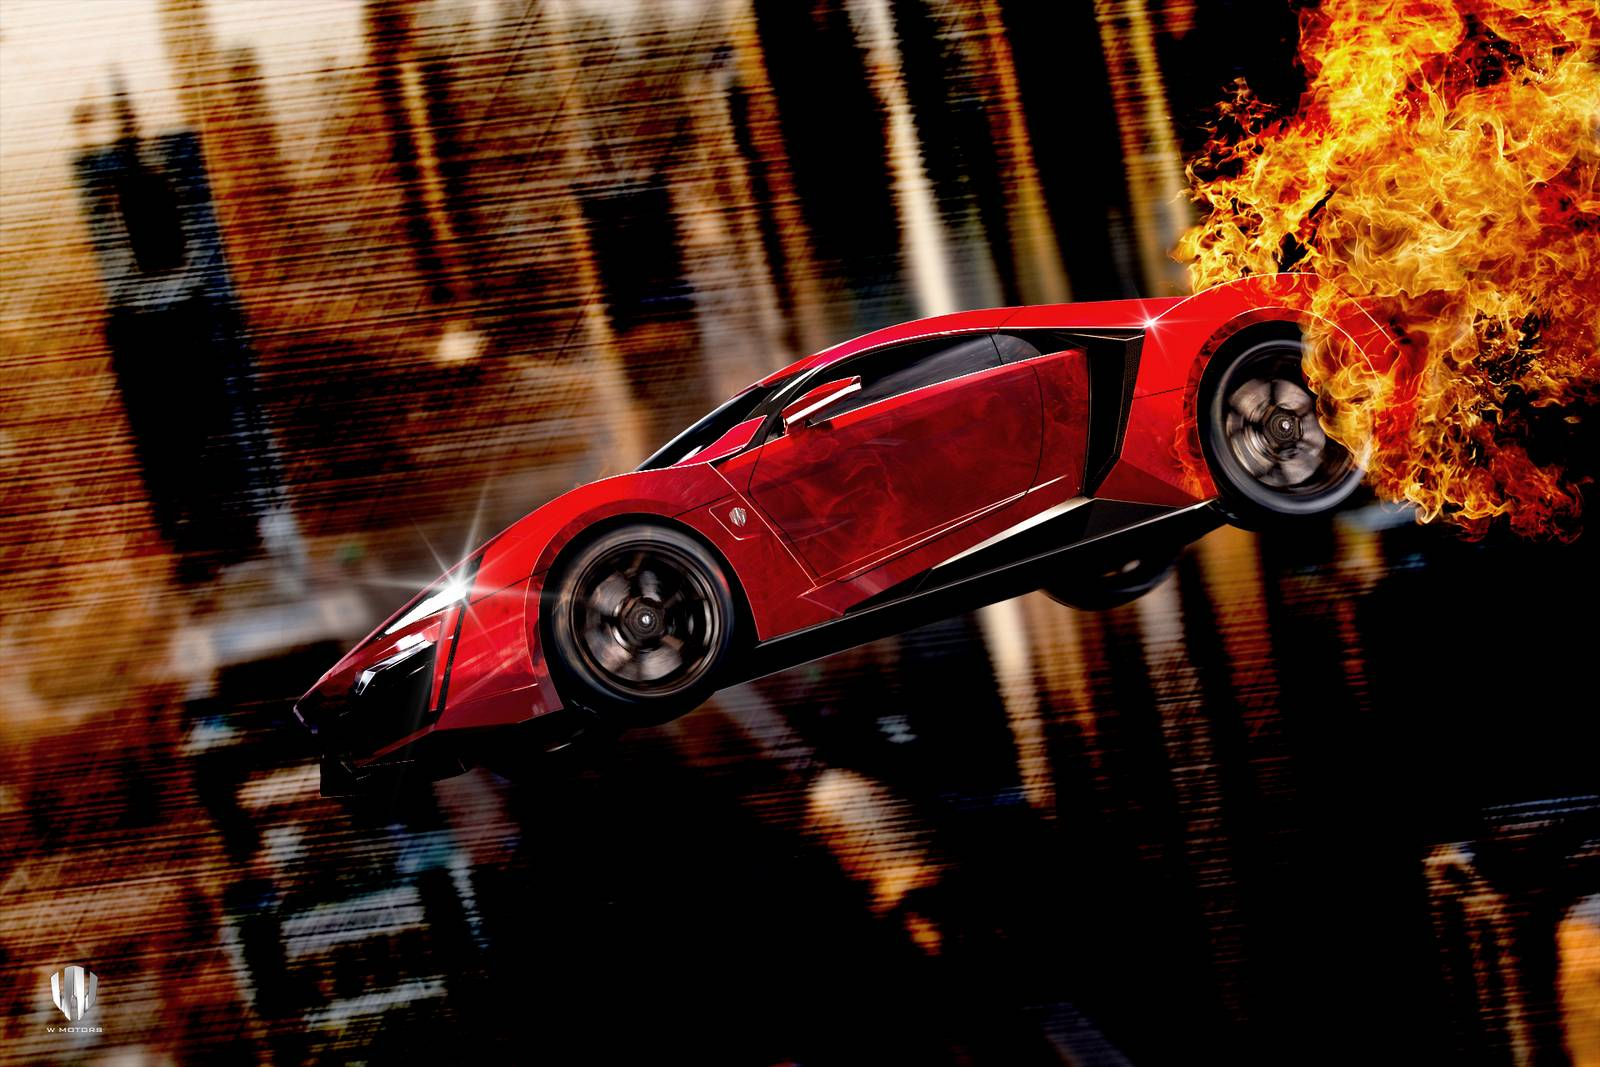 Meet Fast and Furious 7 Lykan HyperSport   The Hero Car    GTspirit Meet Fast and Furious 7 Lykan Hypersport   The Hero Car